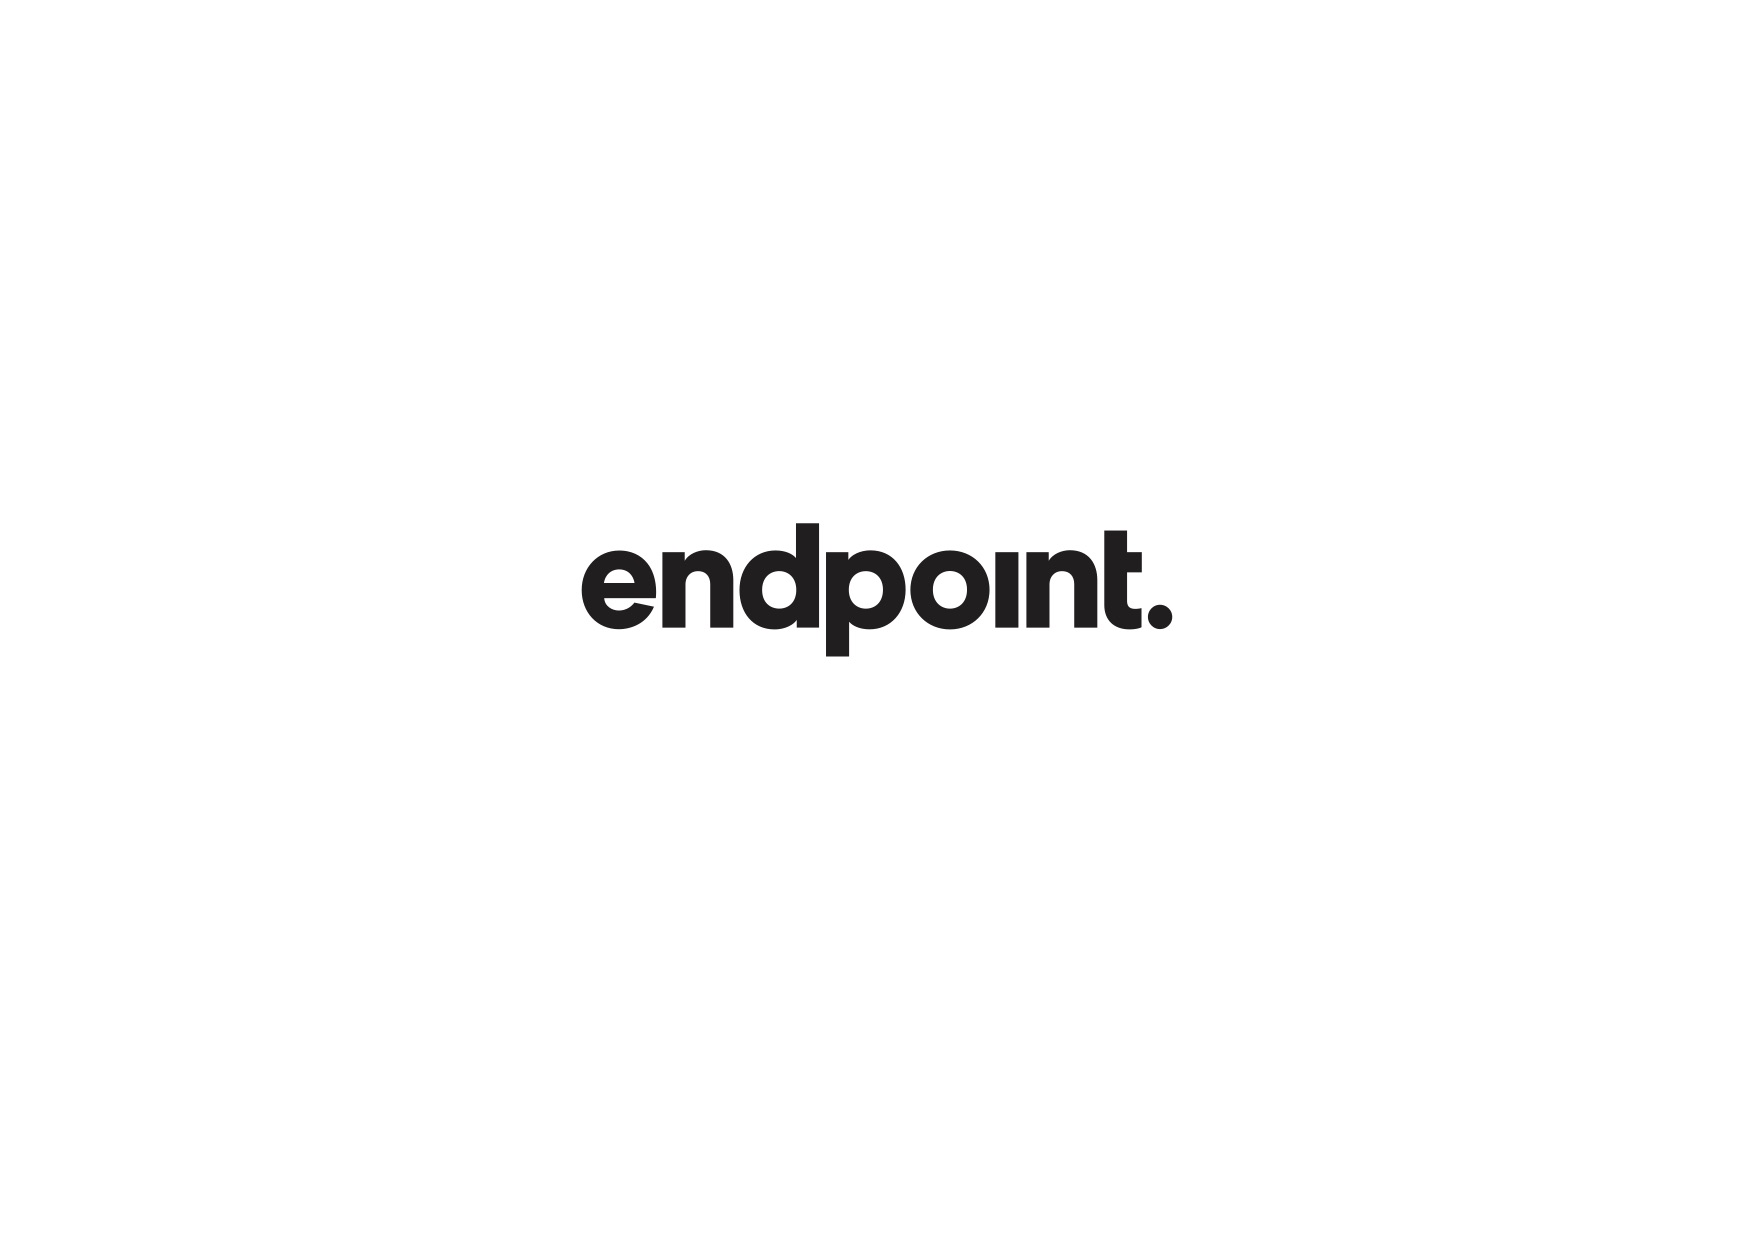 Endpoint Logo